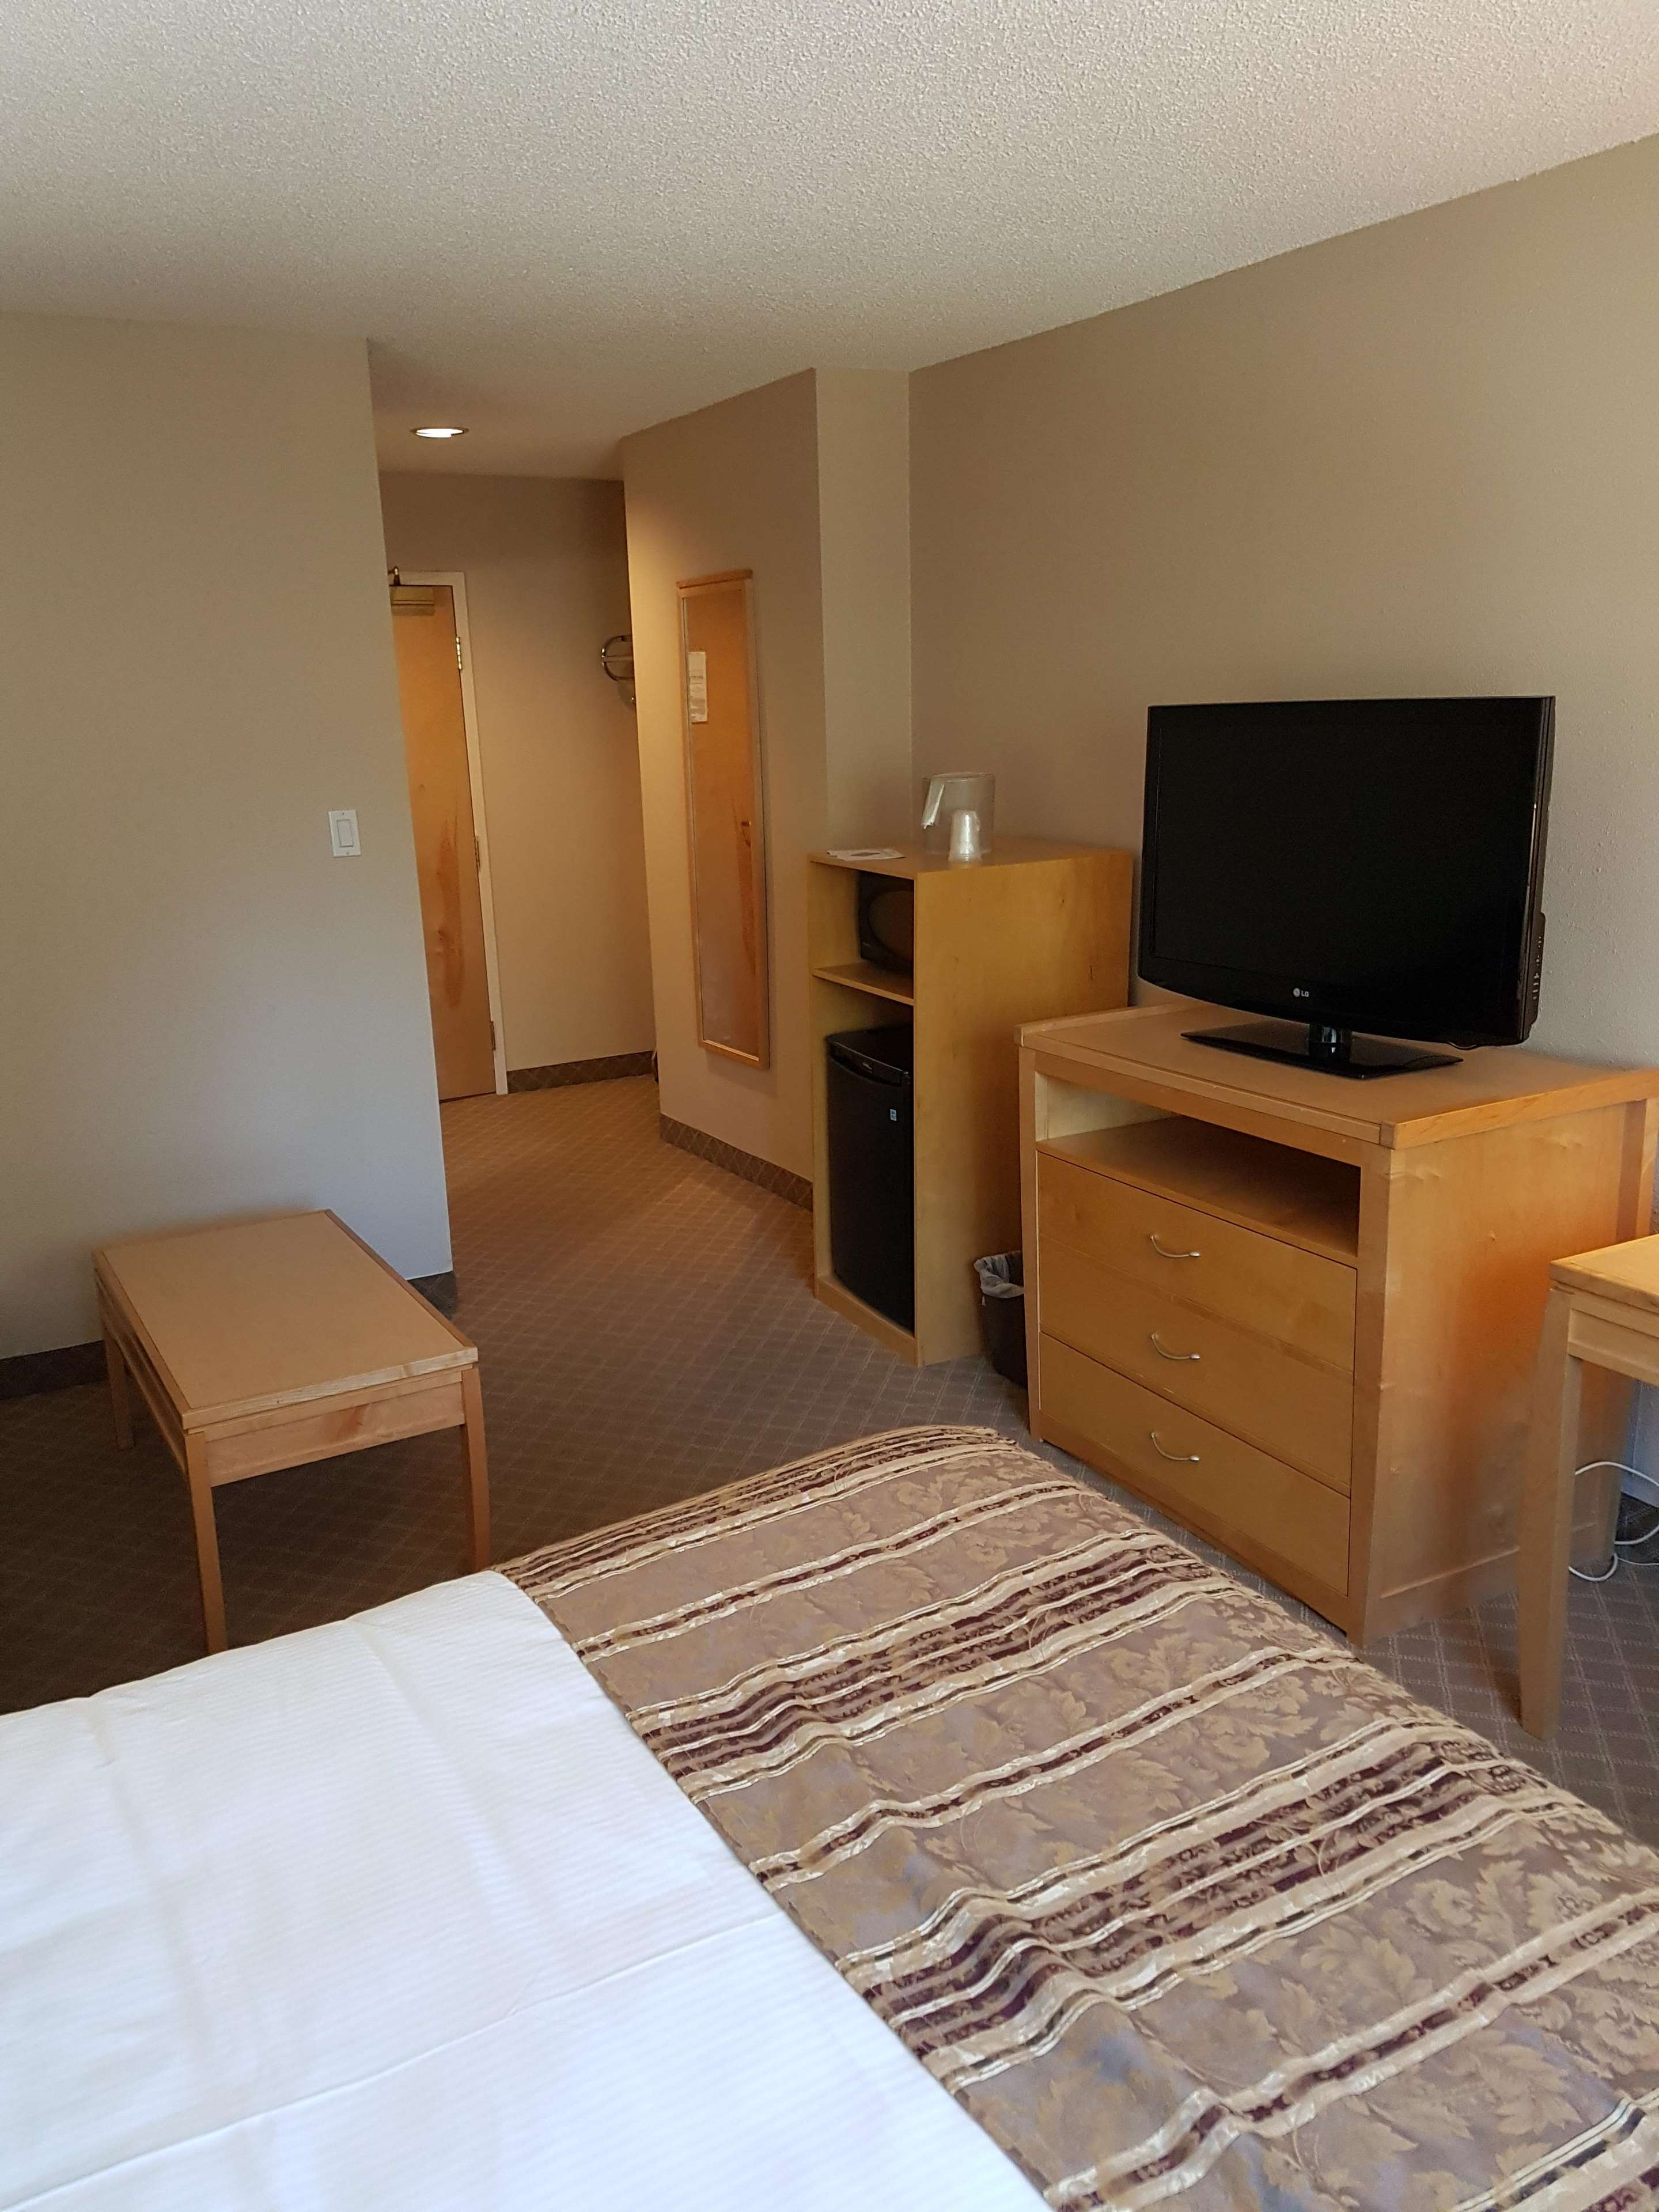 SureStay Plus Hotel by Best Western Coquitlam in Coquitlam: Queen with Sofabed